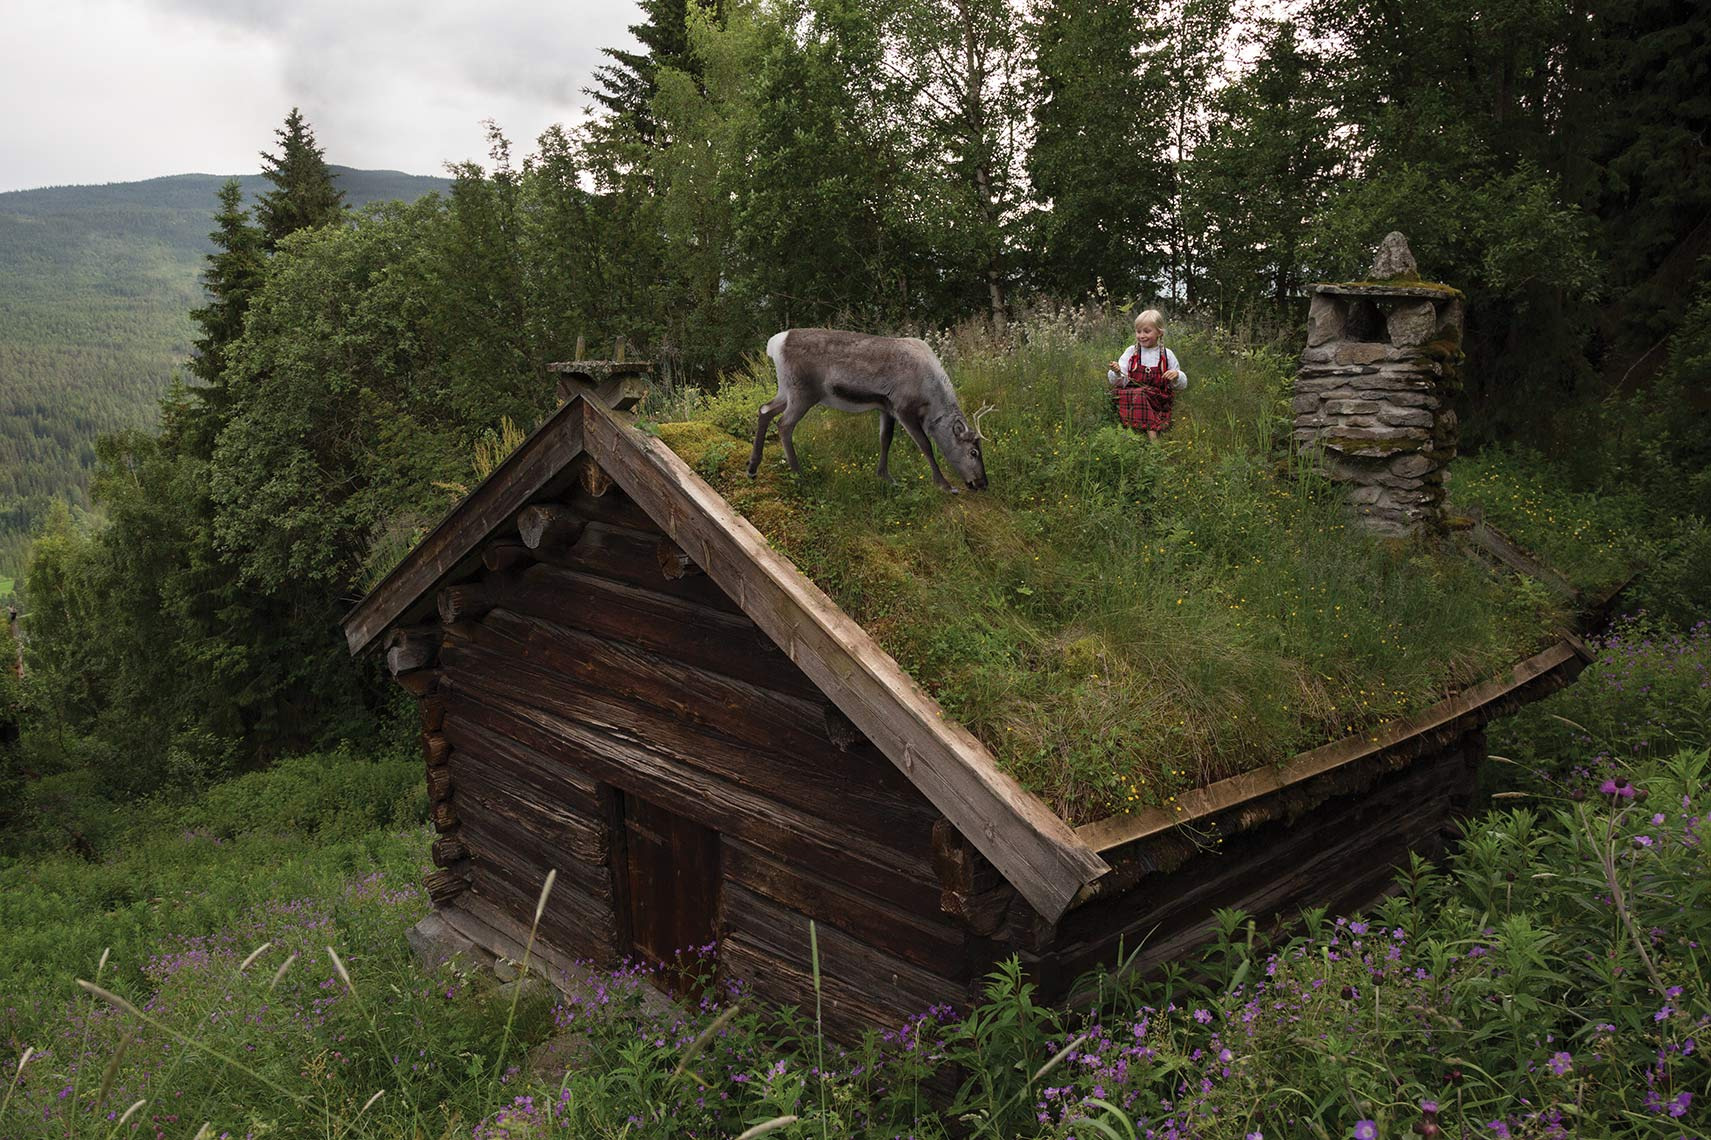 Anja-and-reindeer-on-the-roof_THE-REINDEER-WISH